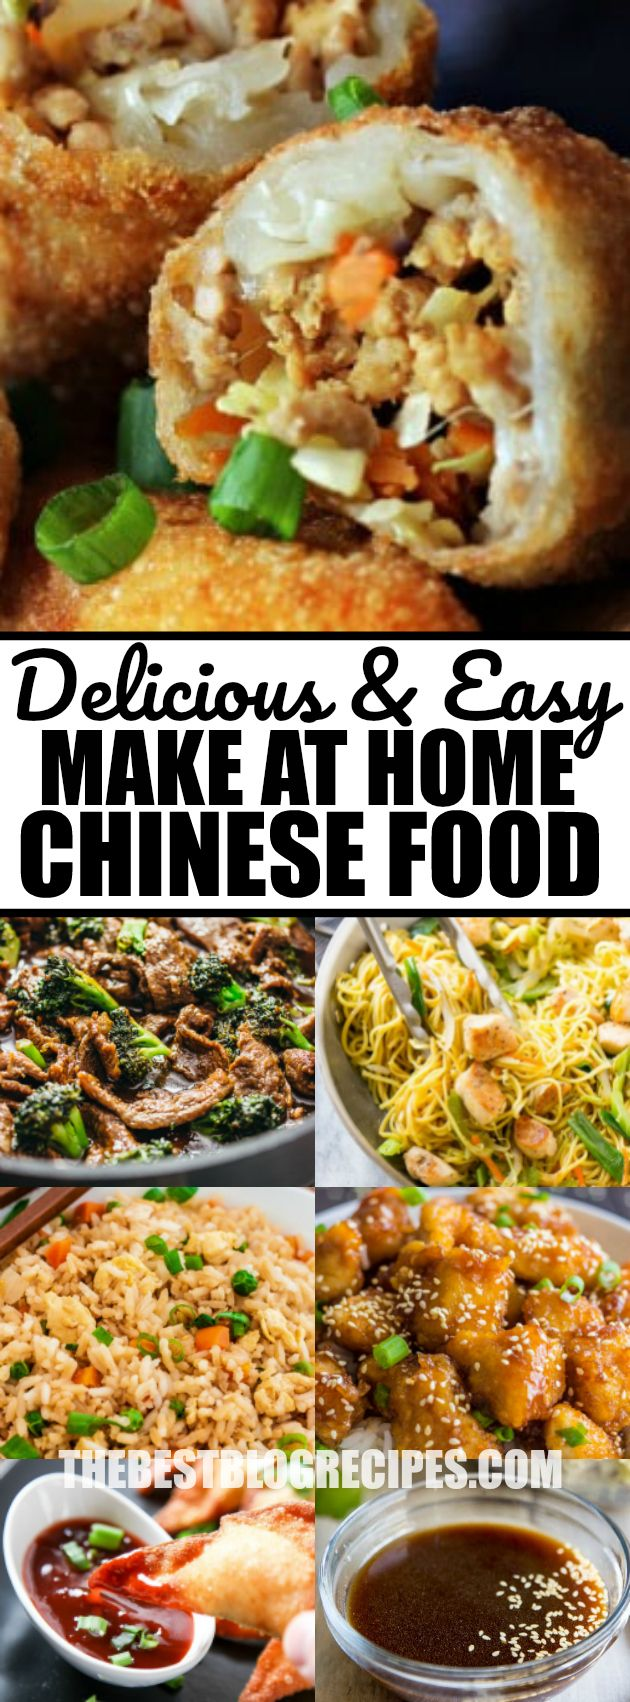 Delicious easy make at home chinese food recipe pinterest cocinas delicious easy make at home chinese food forumfinder